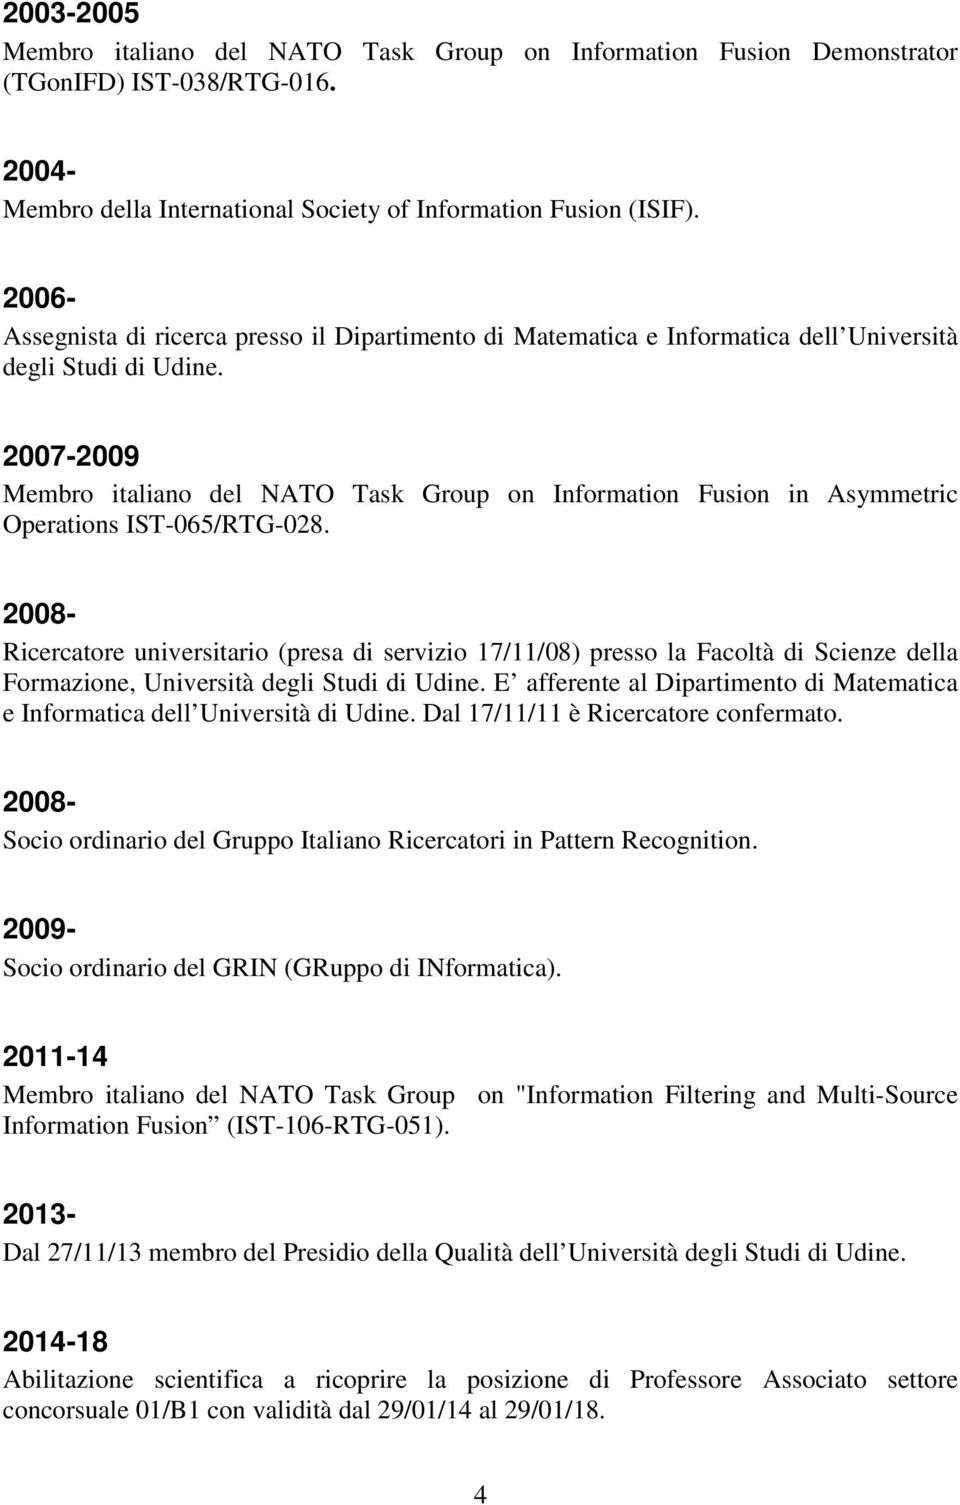 2007-2009 Membro italiano del NATO Task Group on Information Fusion in Asymmetric Operations IST-065/RTG-028.